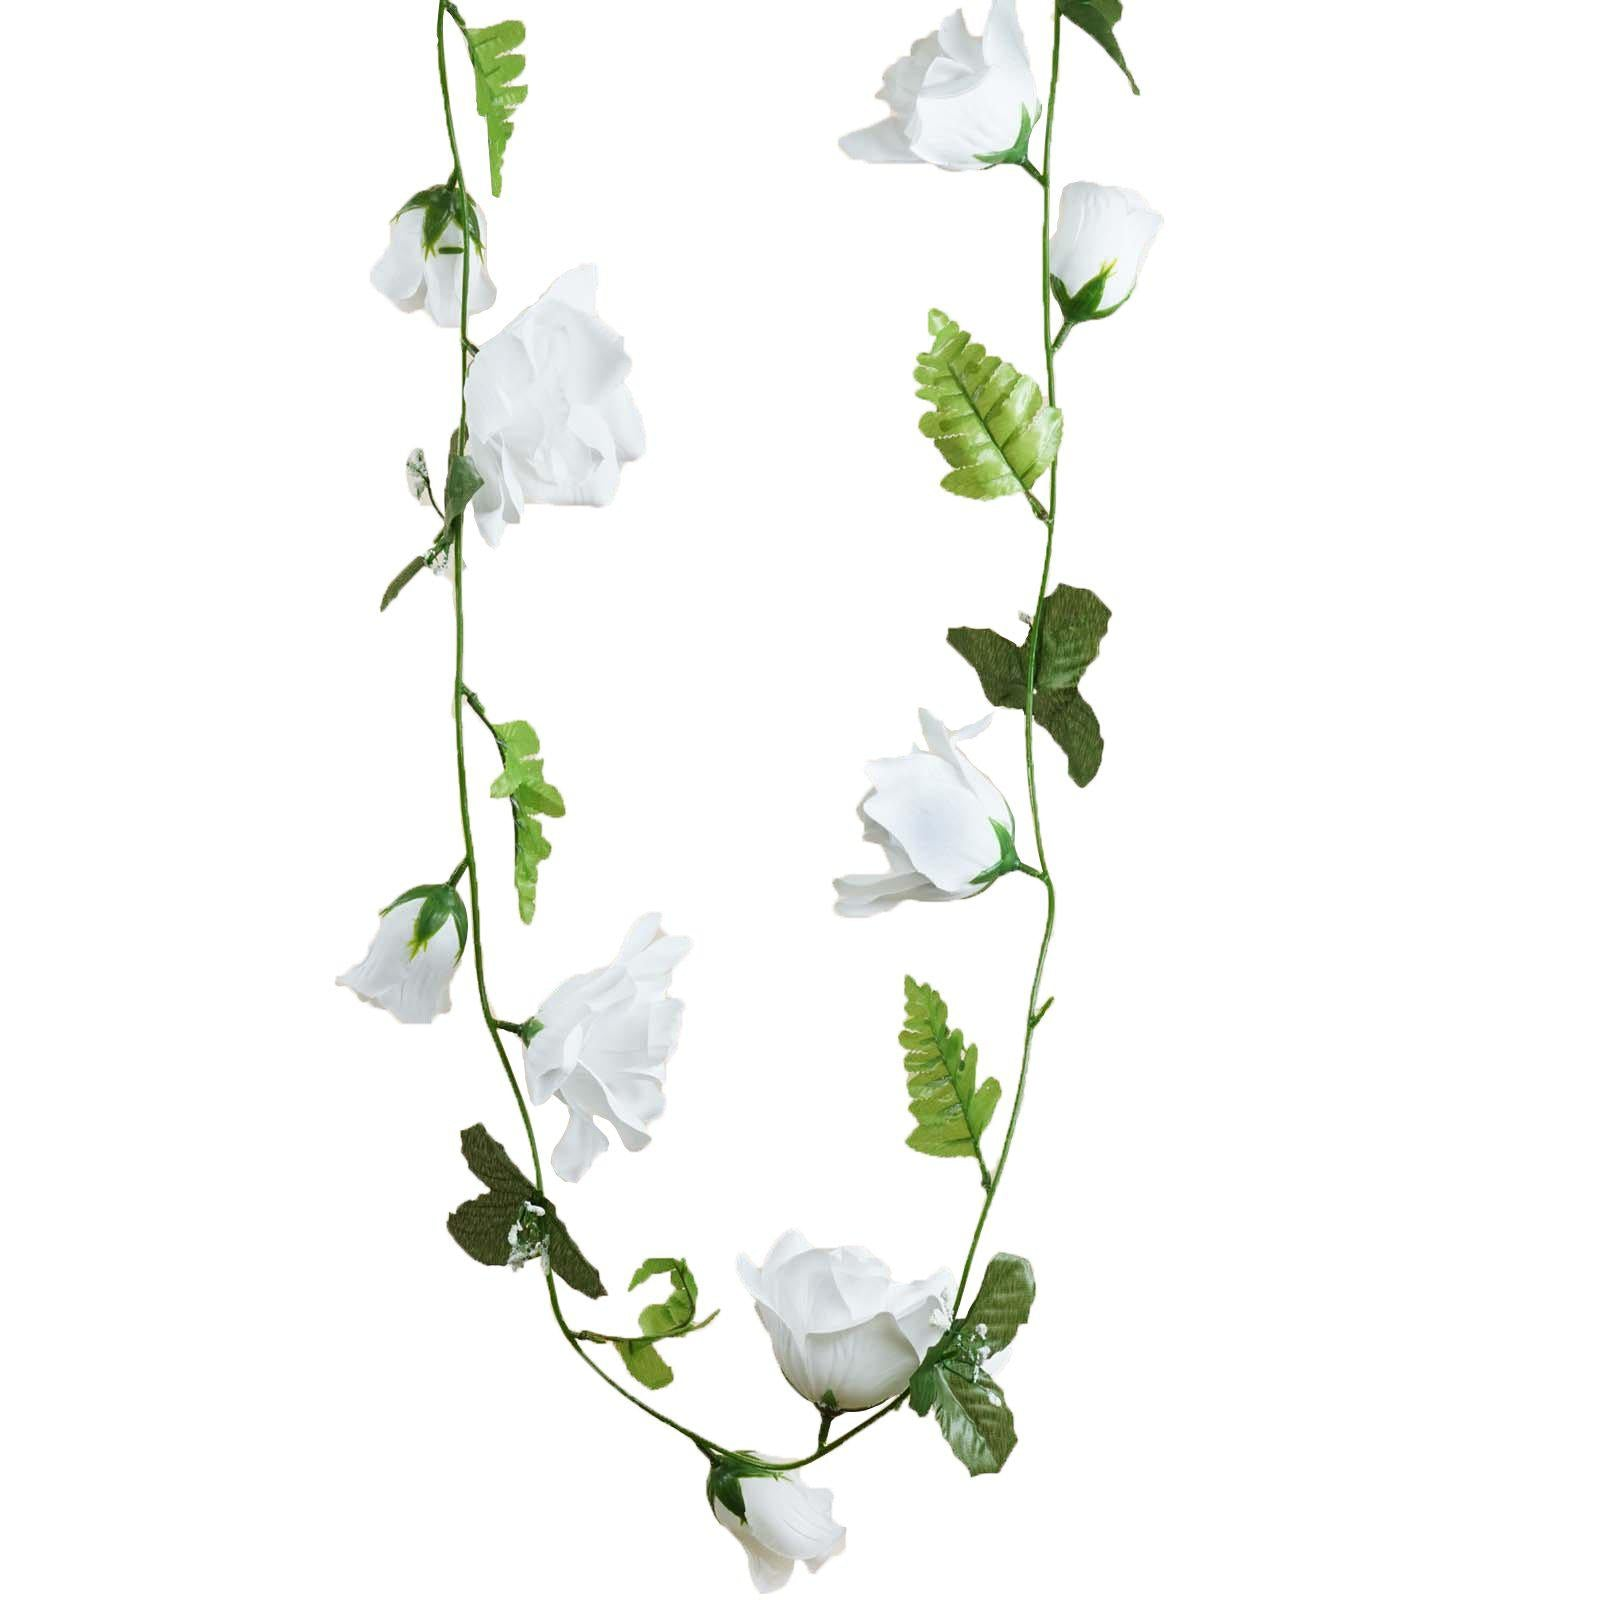 4 pack 24 ft white uv protected supersized rose chain artificial 4 pack 24 ft white uv protected supersized rose chain artificial flower garland wedding arch stage decoration mightylinksfo